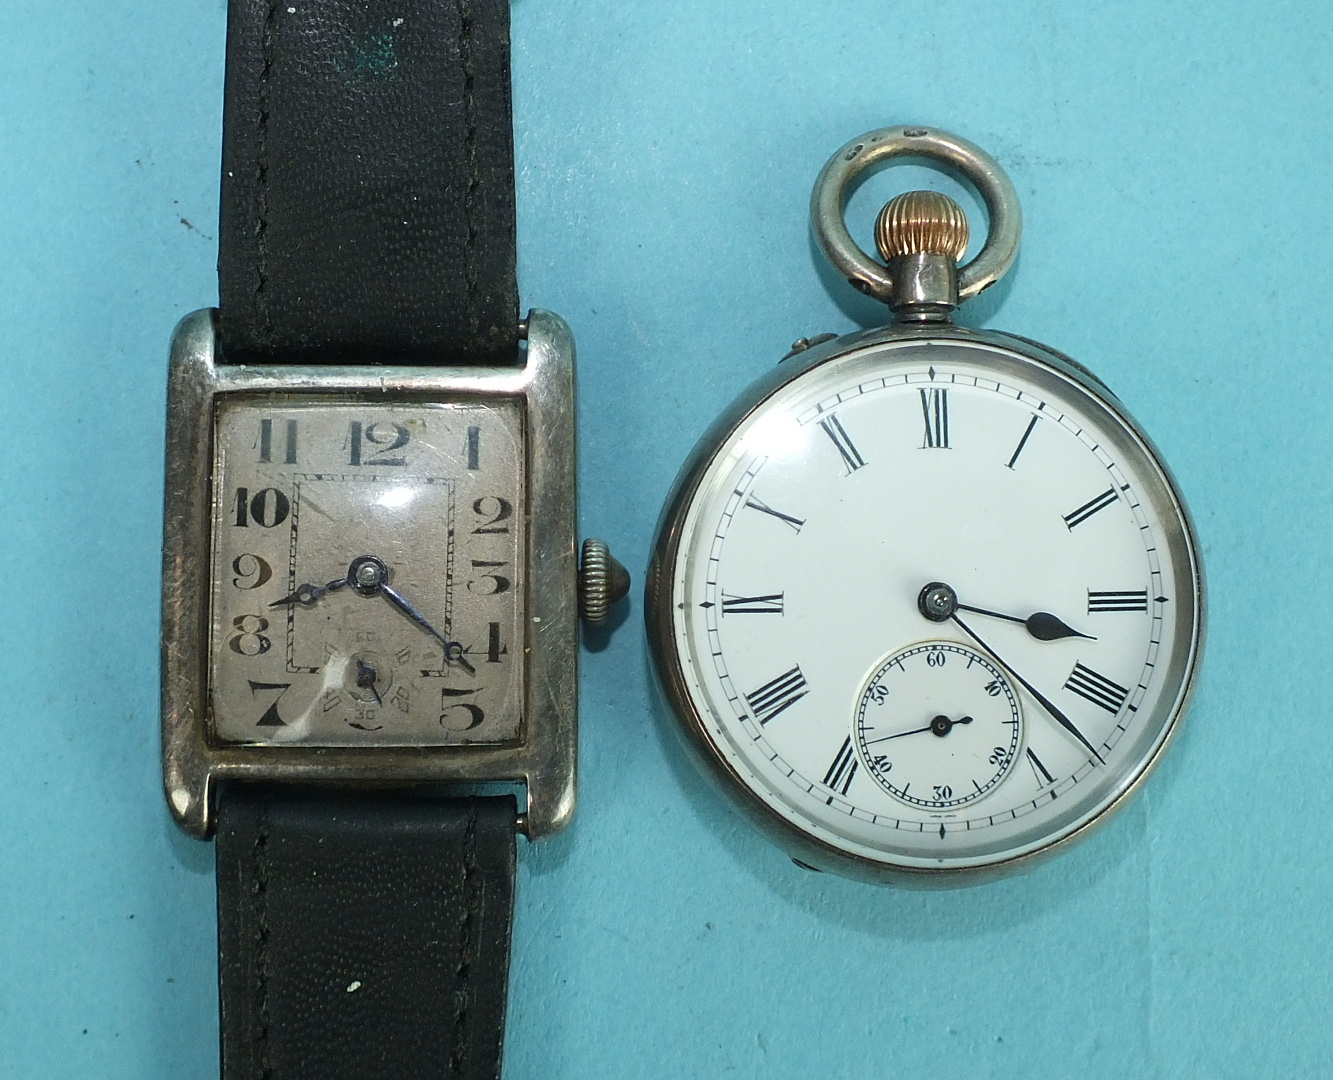 Lot 232 - A gentleman's vintage silver-cased wrist watch c1930, the rectangular silvered face with Arabic